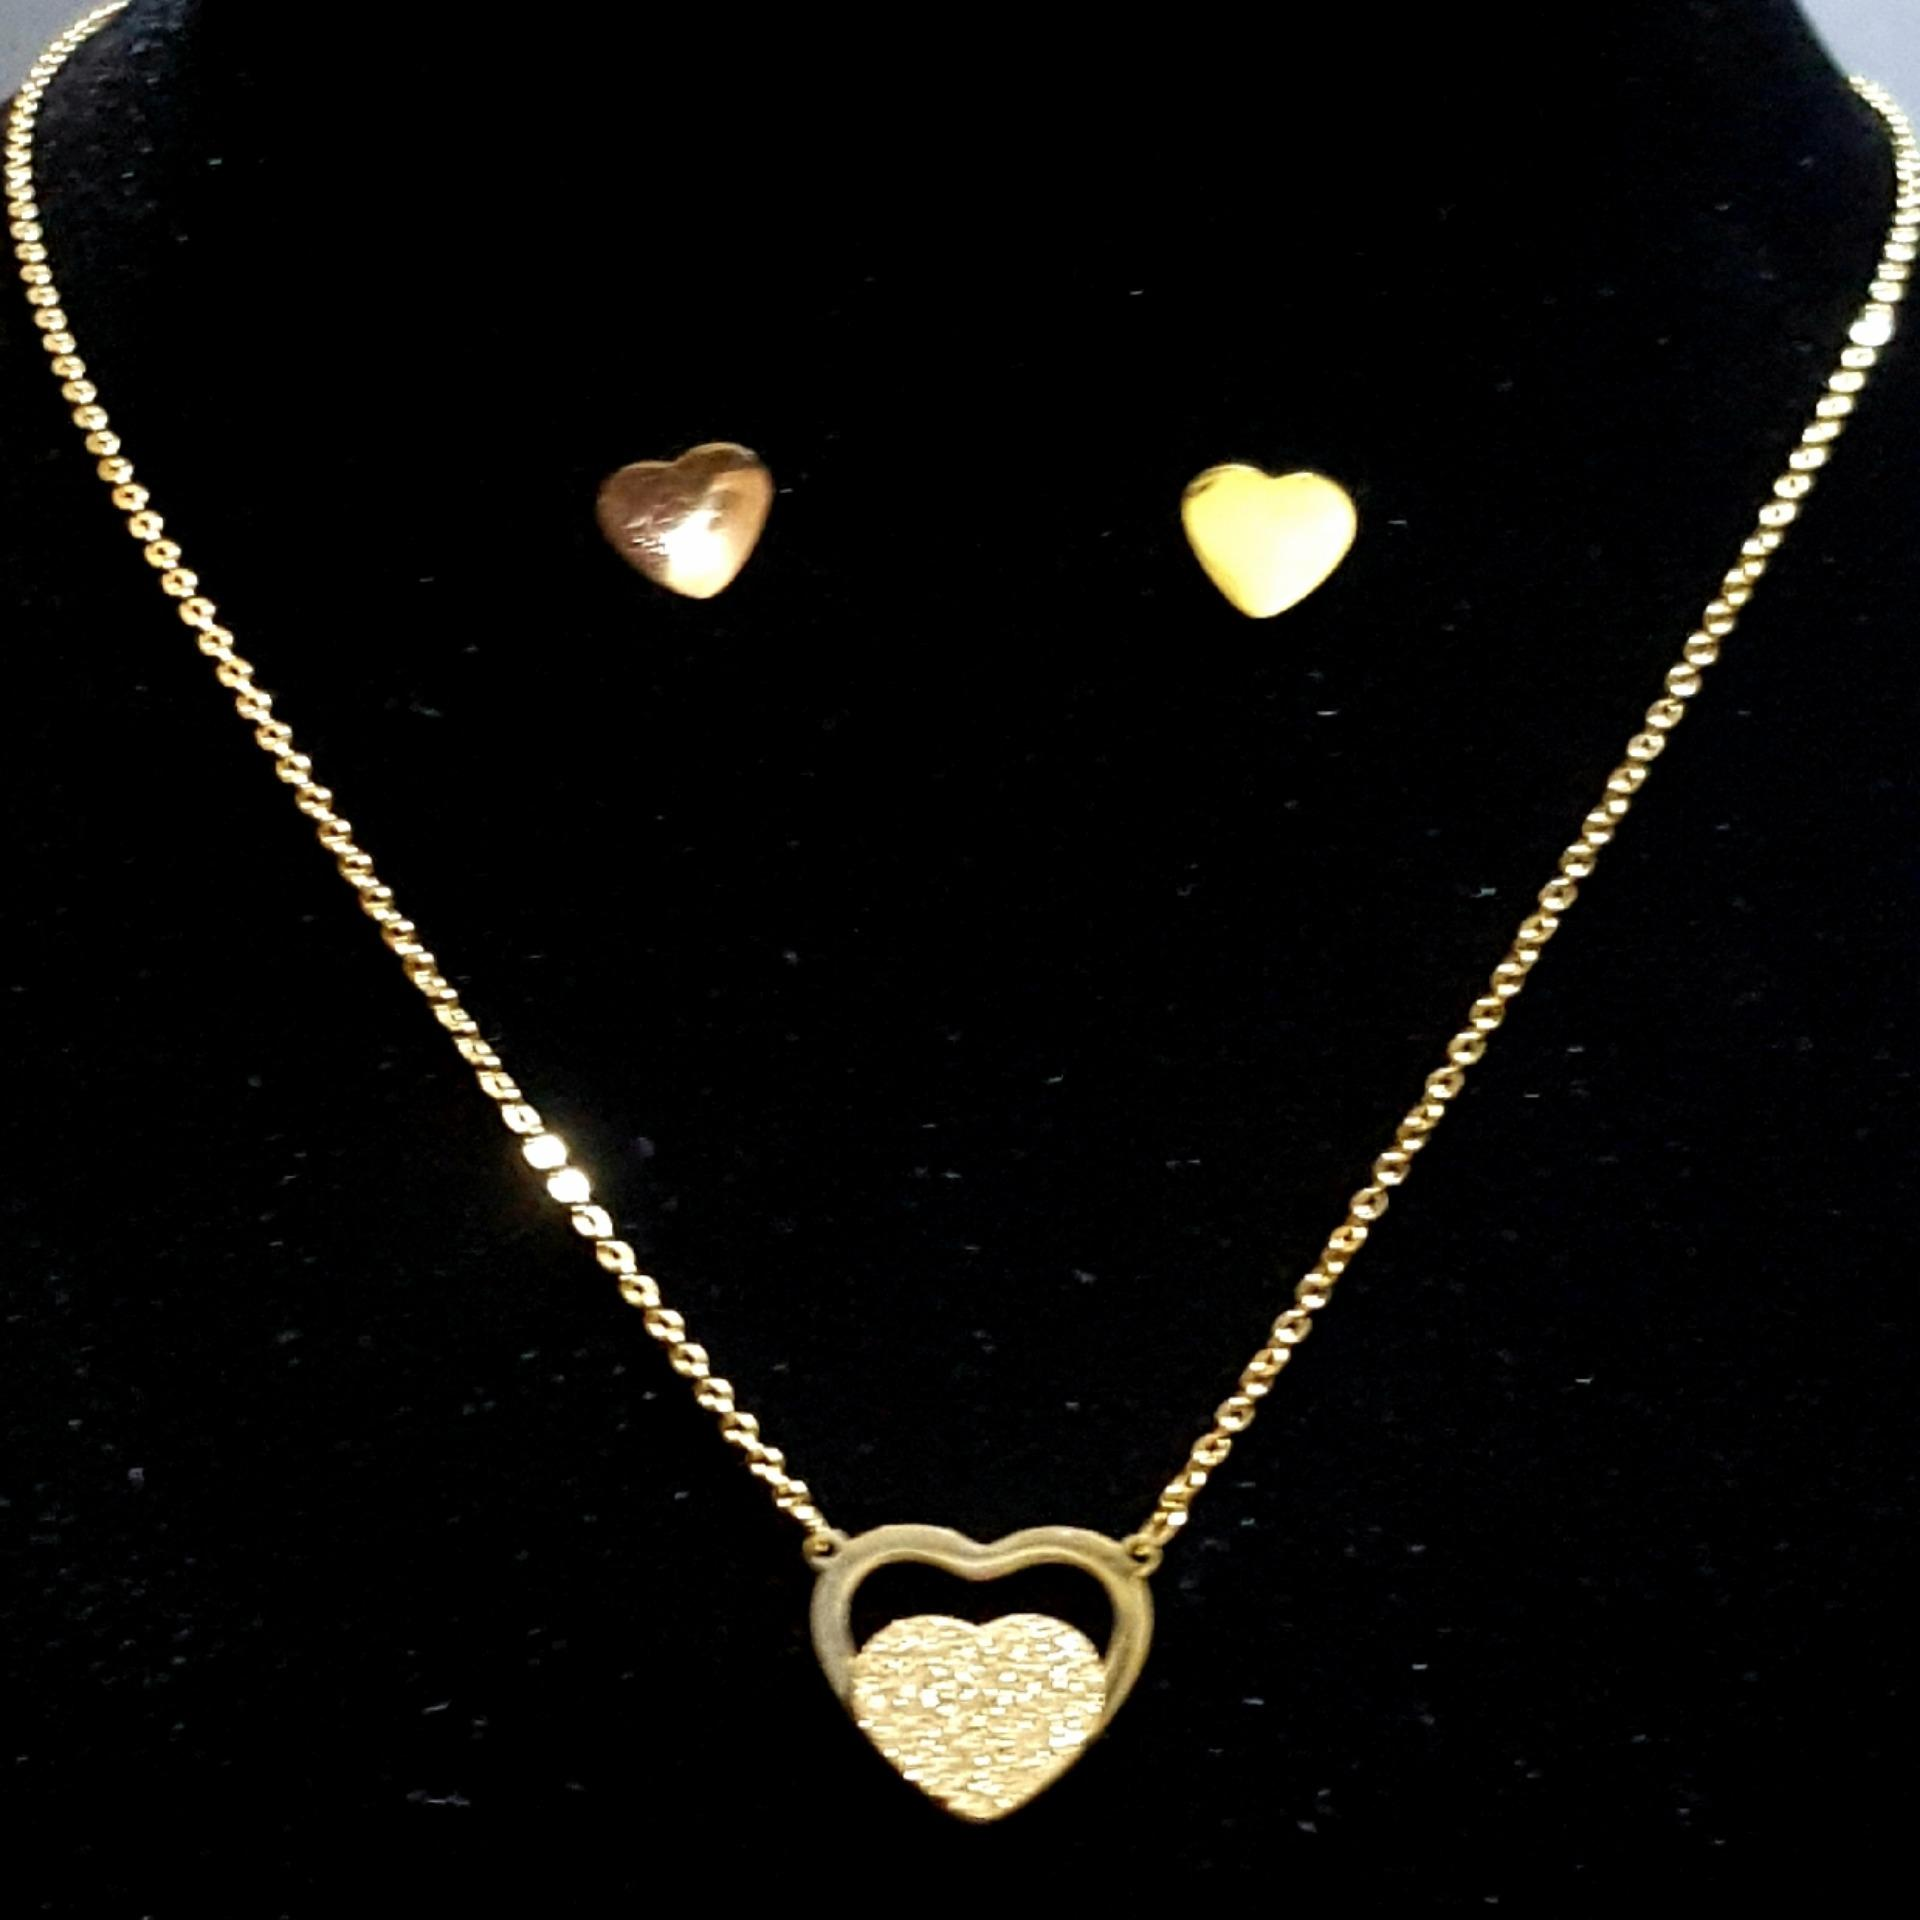 BENSHOP Stainless Gold Fashion Necklace and Earring Jewelry Set (DoubleHeart Frosting)